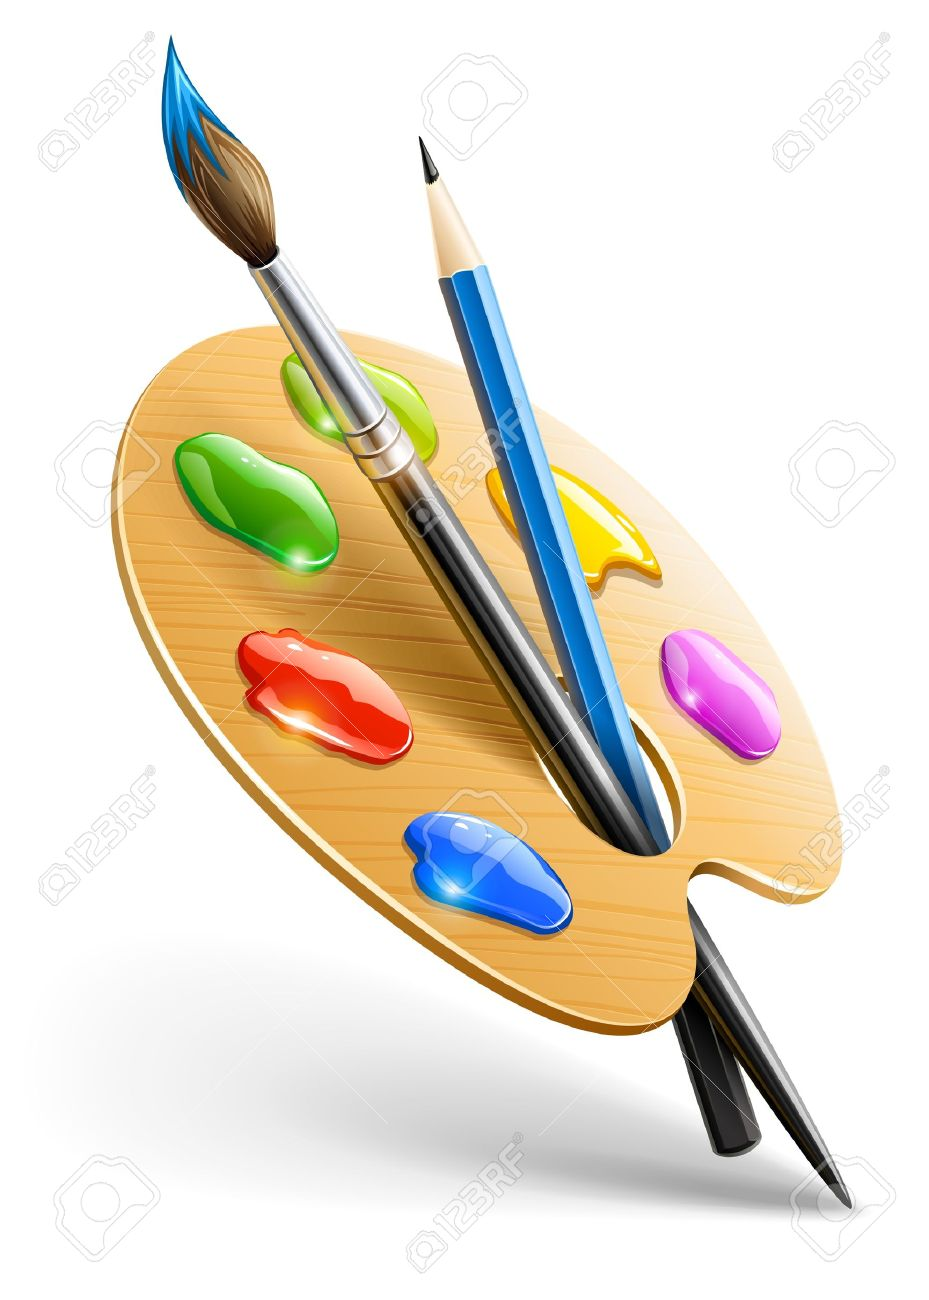 929x1300 Art Palette With Paint Brush And Pencil Tools For Drawing Royalty